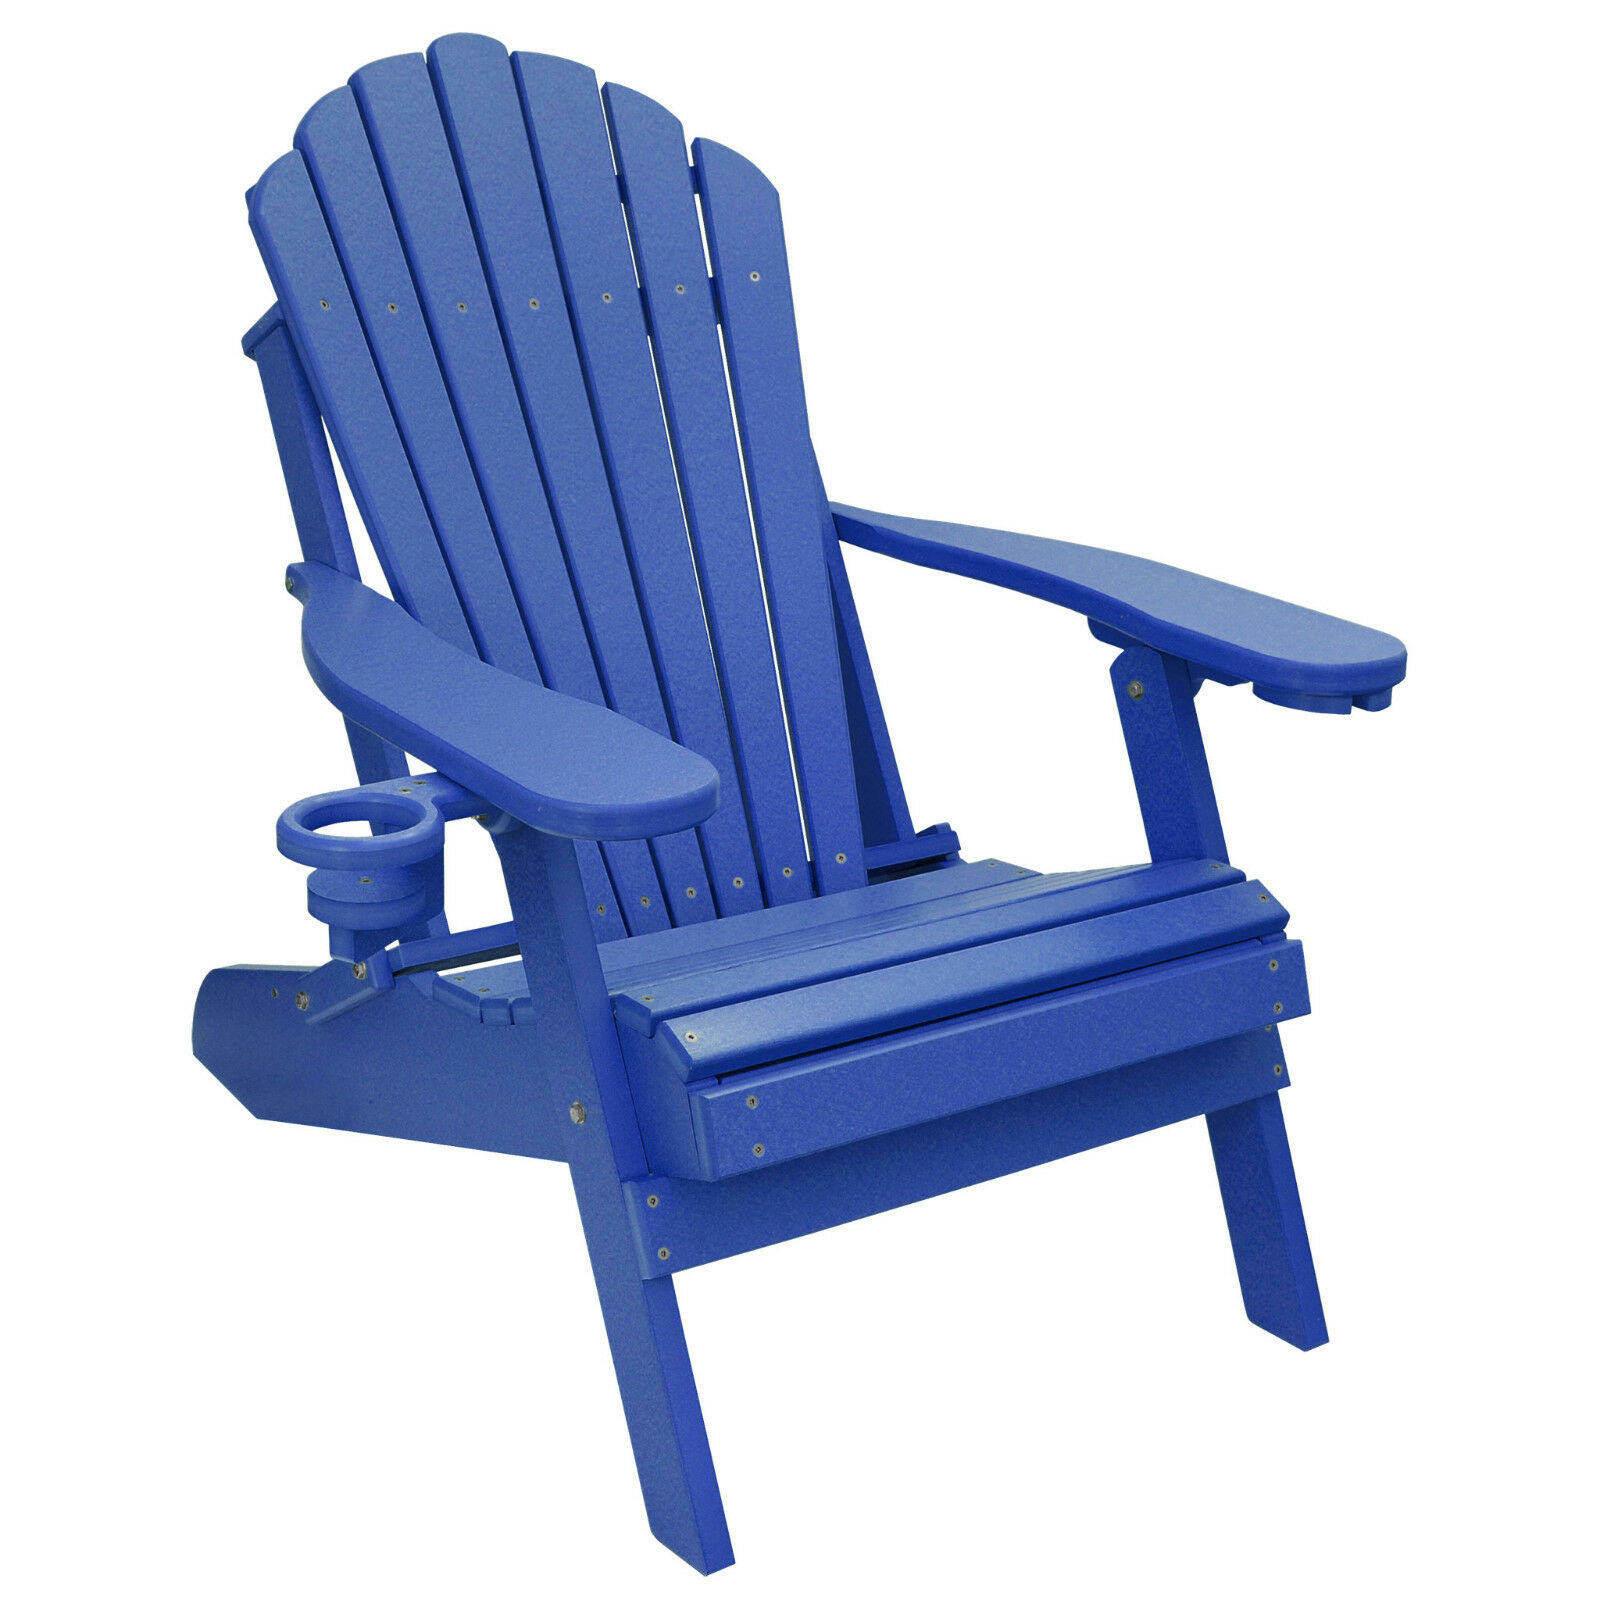 Deluxe Outer Banks Poly Folding Adirondack Chair w/ Cup & Sm